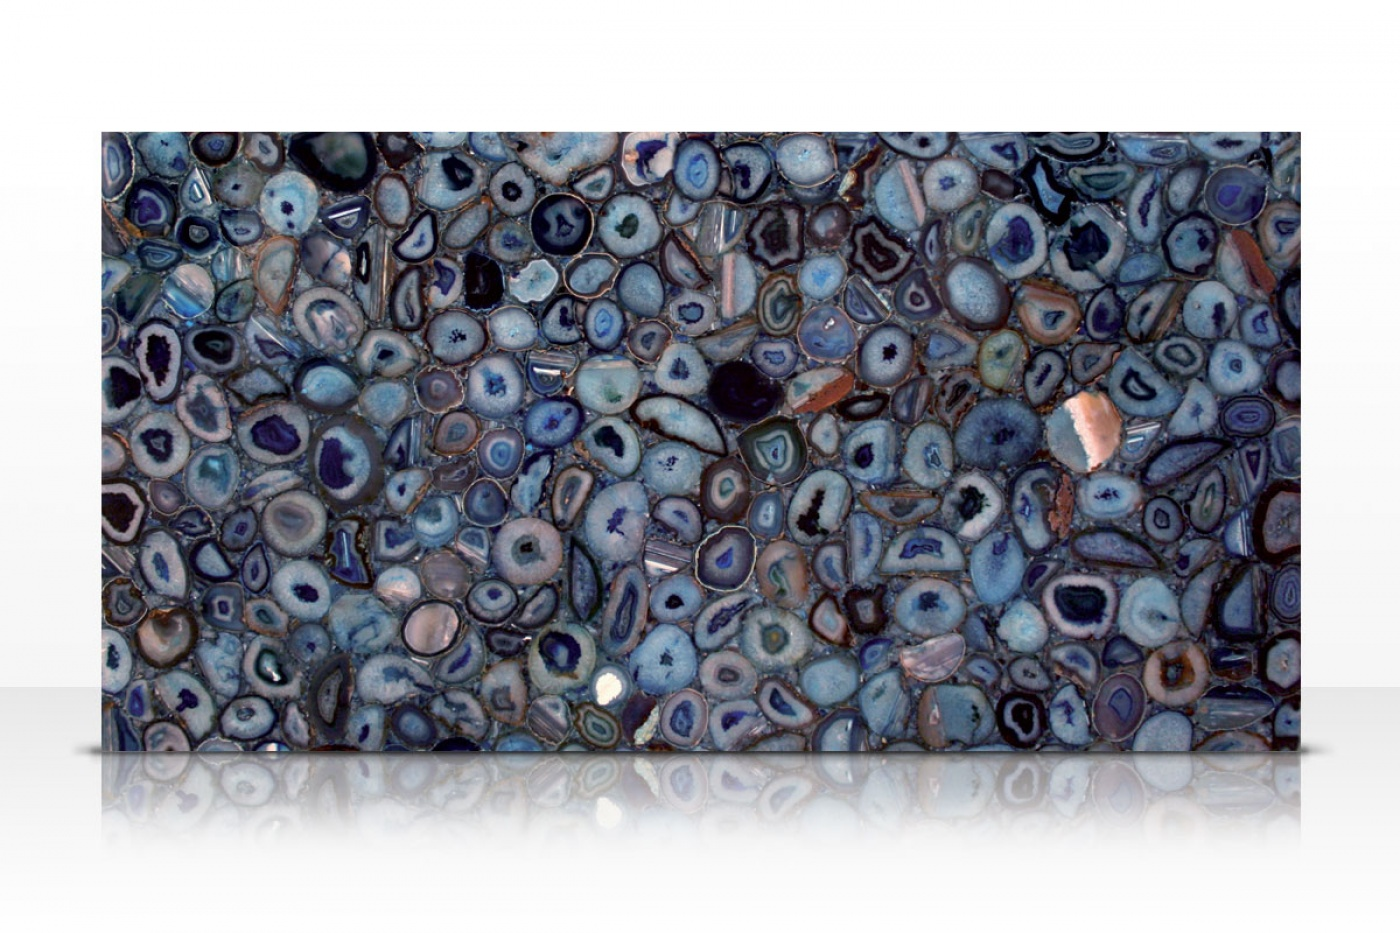 Blue Agate slab